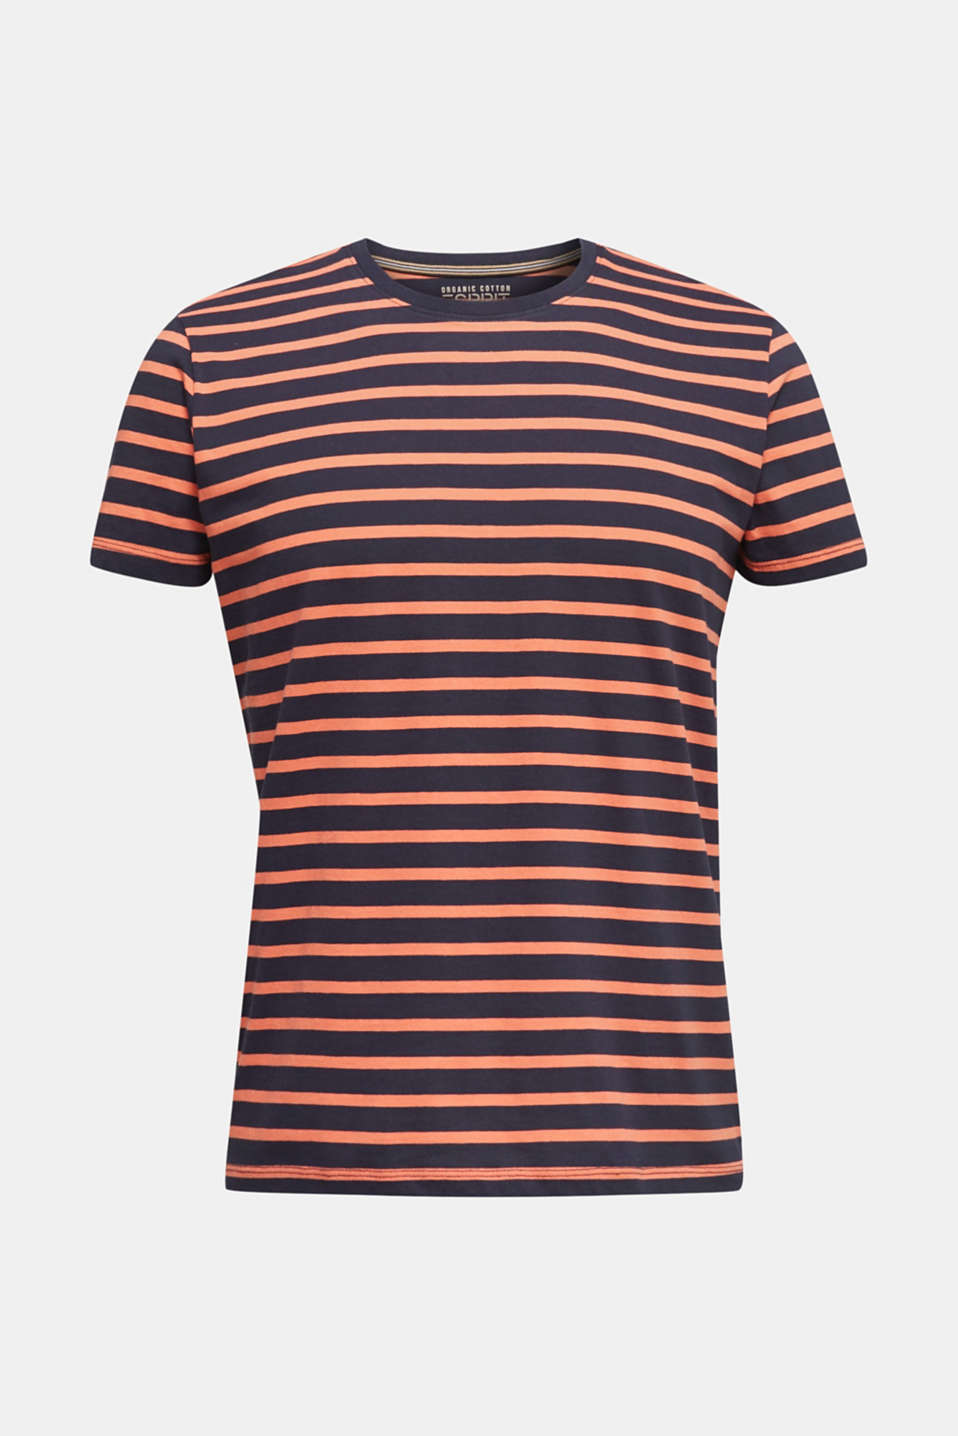 Striped jersey top, cotton, NAVY 3, detail image number 7